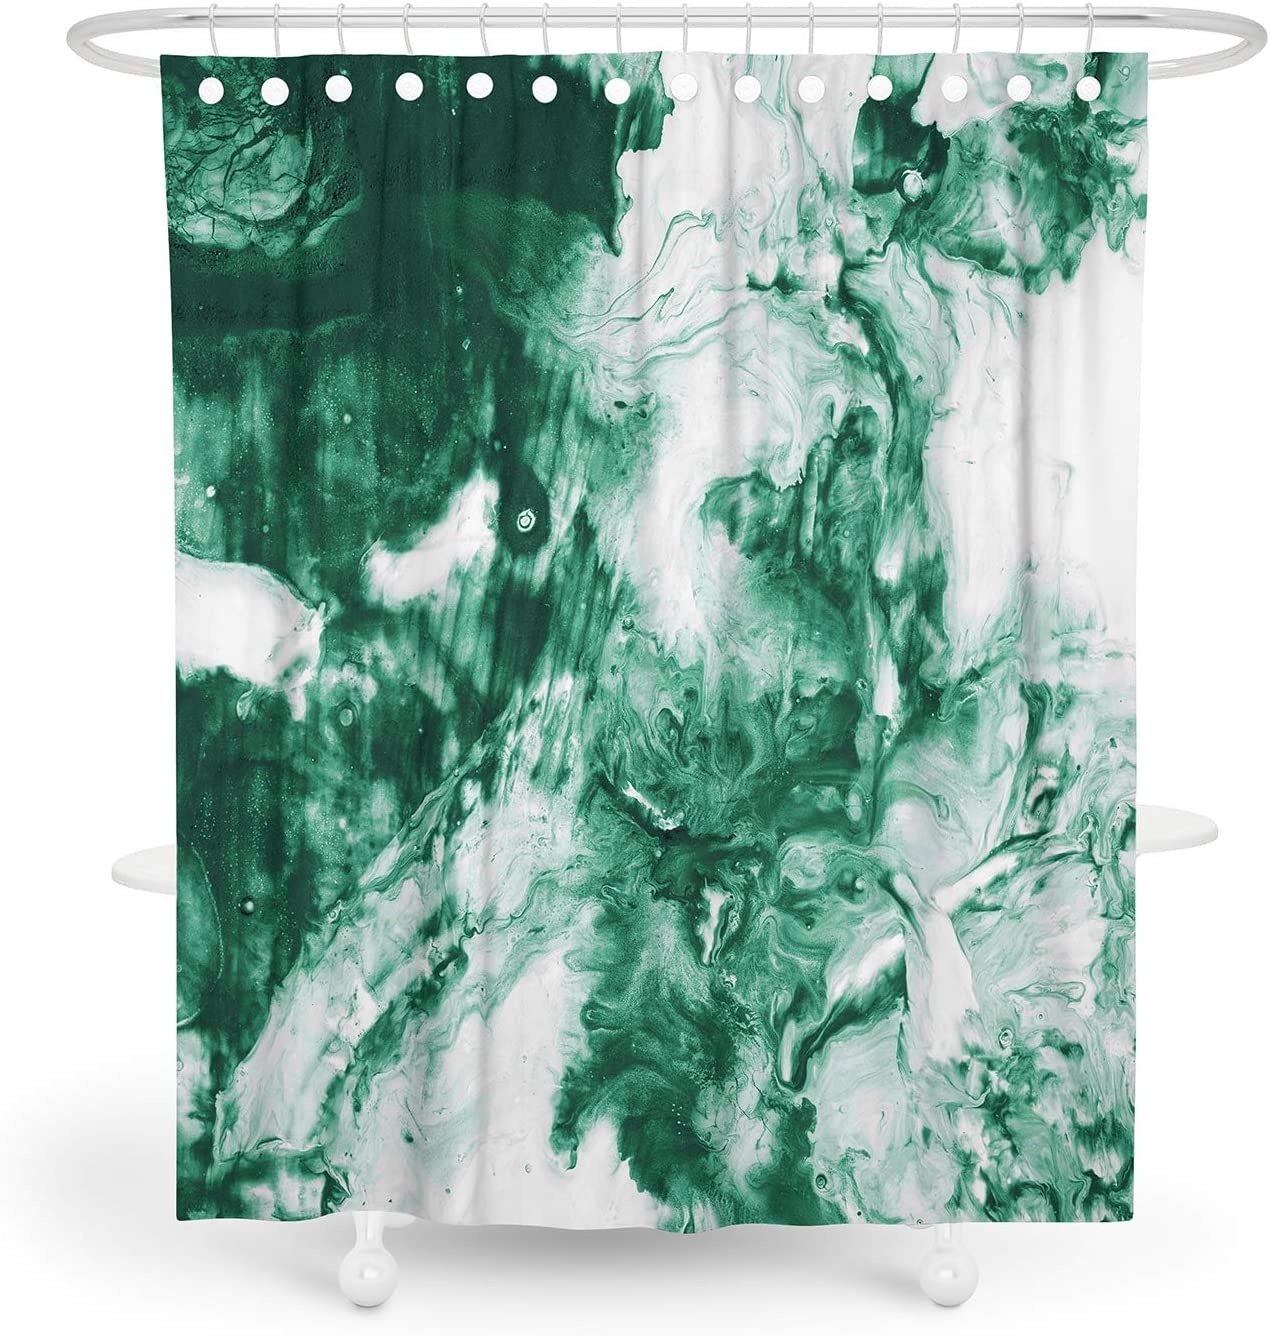 MuaToo Waterproof Fabric Shower Curtain,Bathroom Decor Abstract Theme Series Shower Curtains Green and White, 72 x 72 Inches